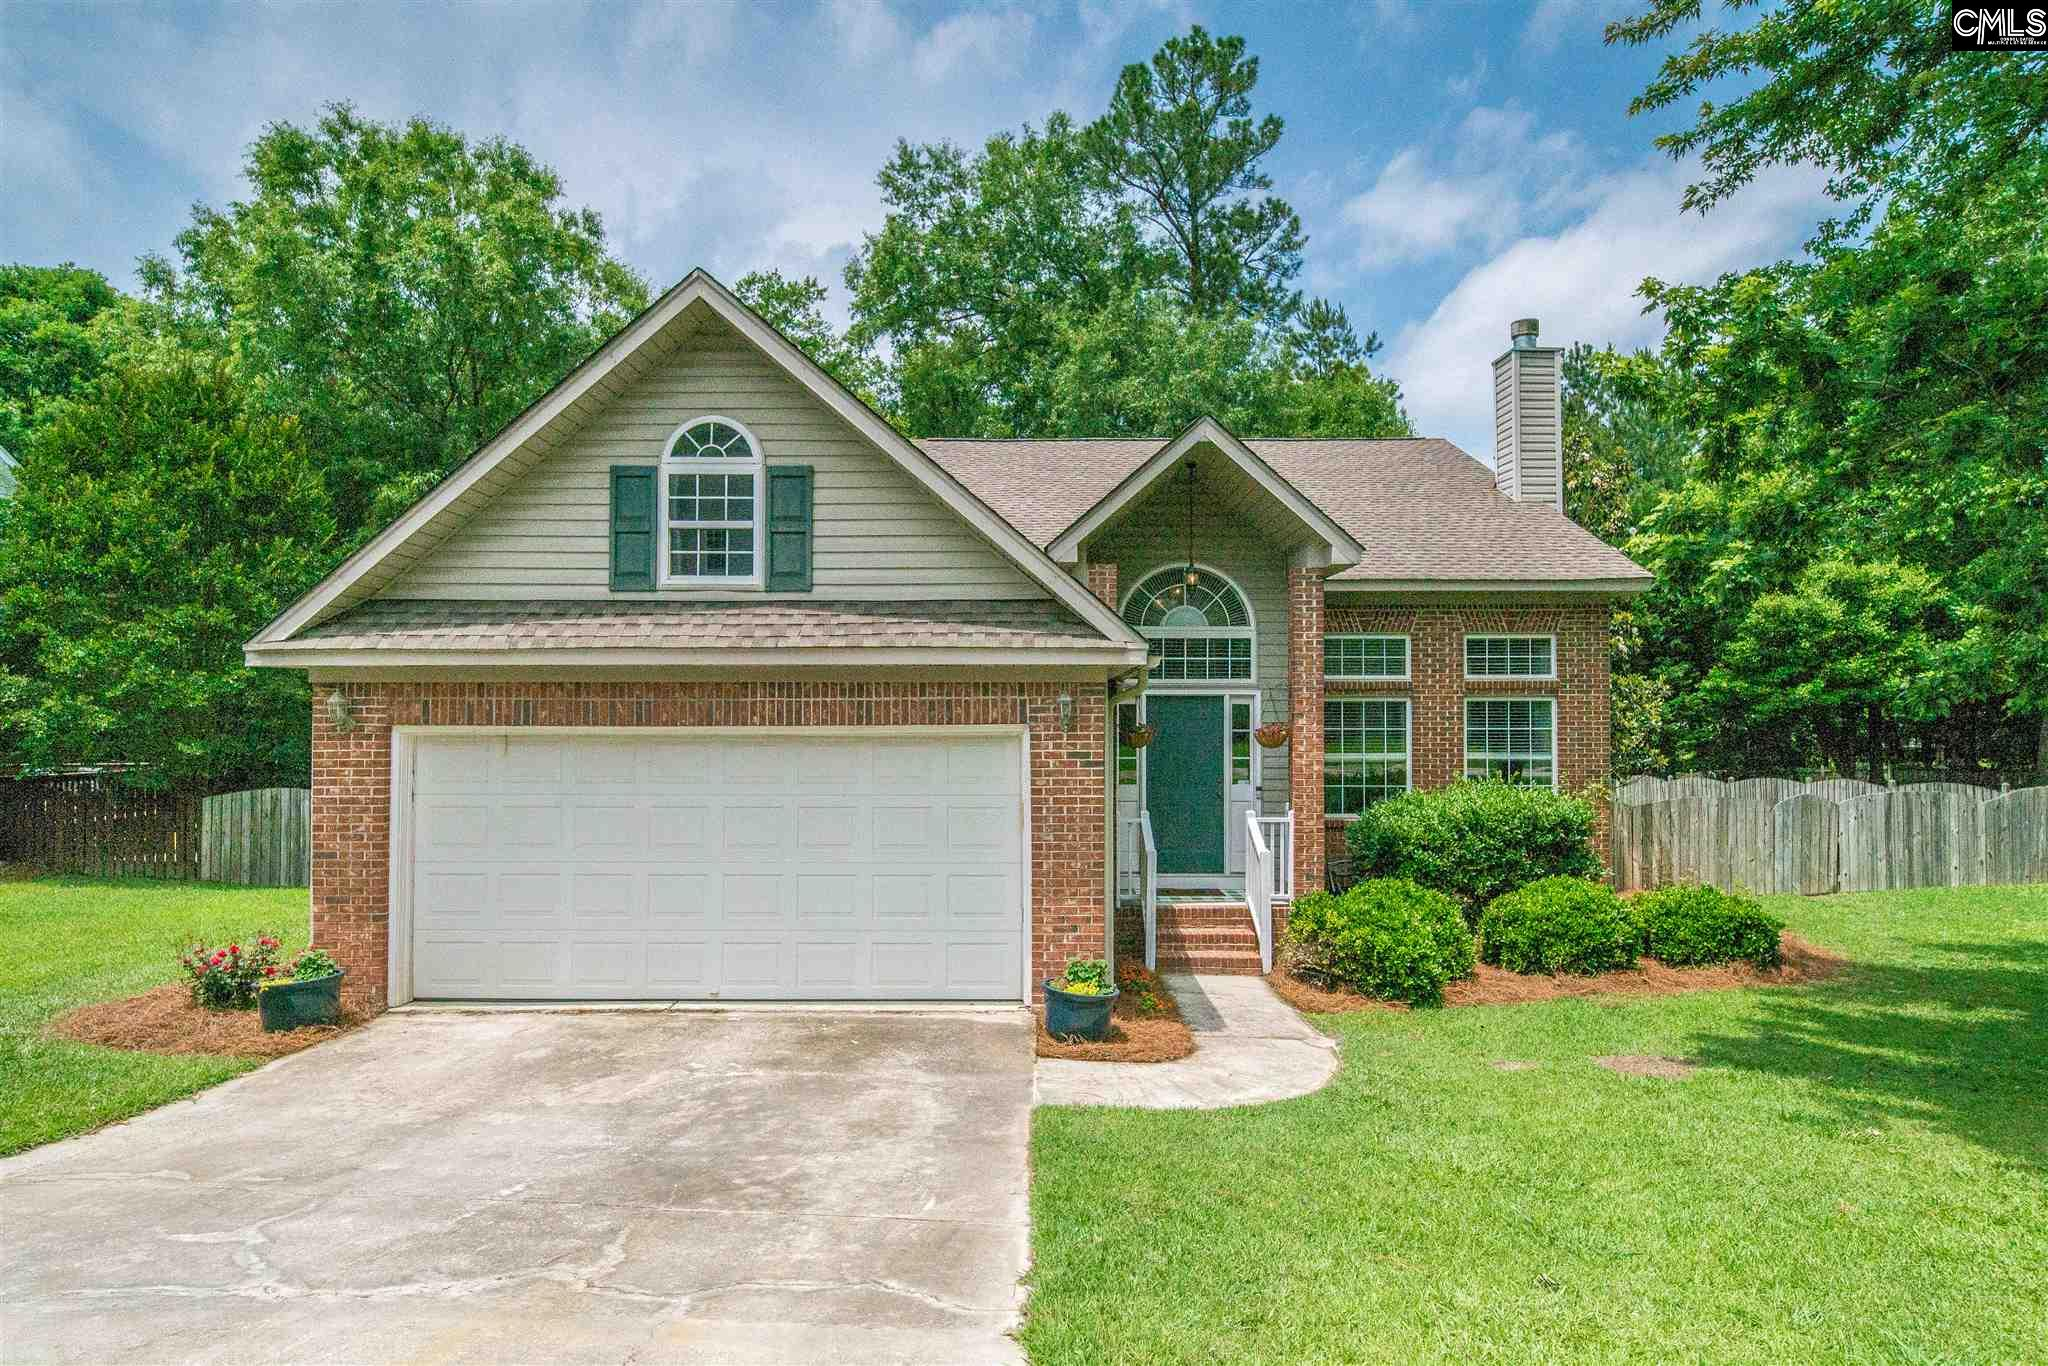 302 High Bluff Irmo, SC 29063